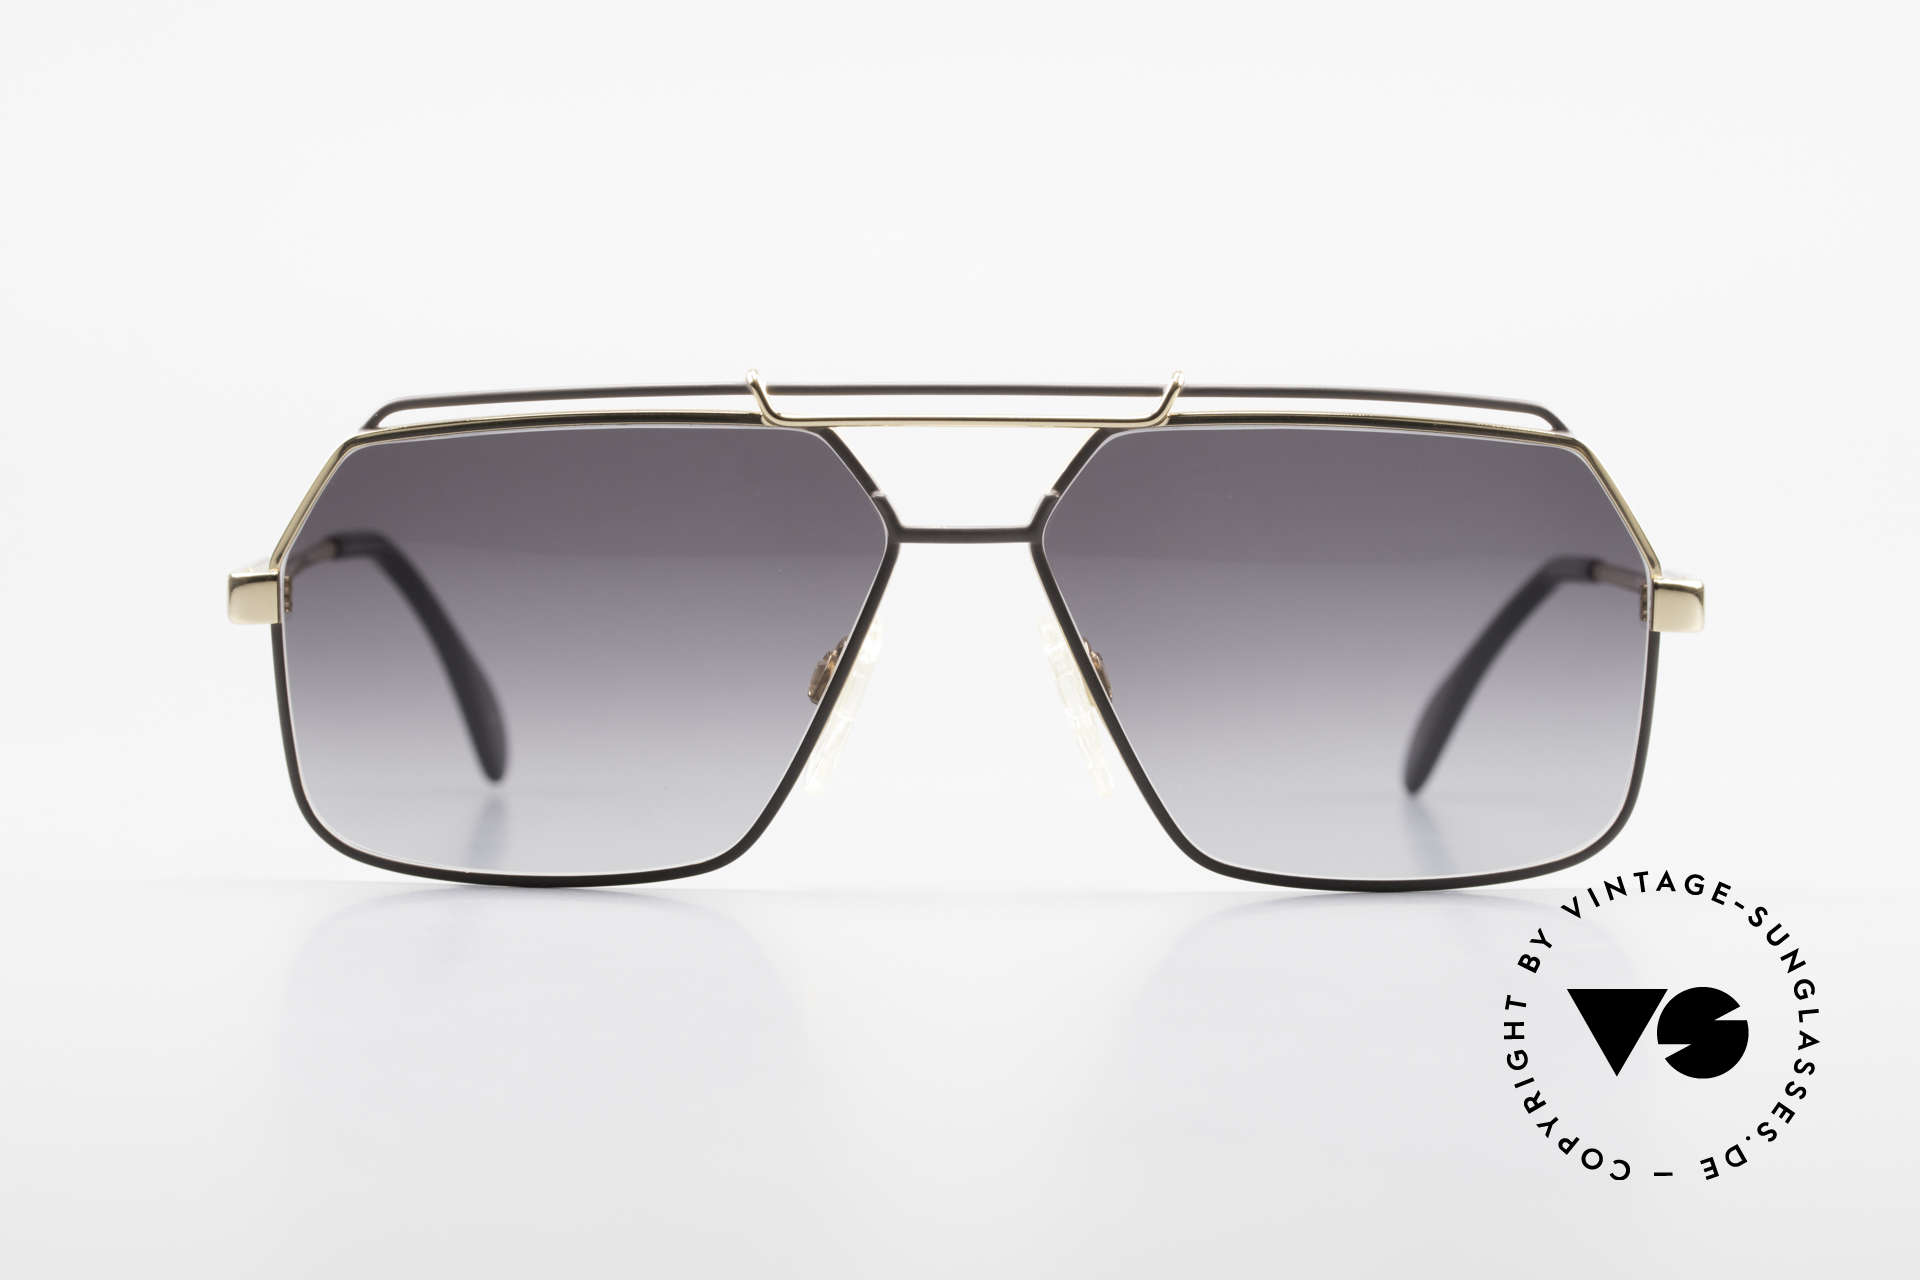 Cazal 734 West Germany Original Cazal, finest quality from W.Germany, in size 59/13, 140, Made for Men